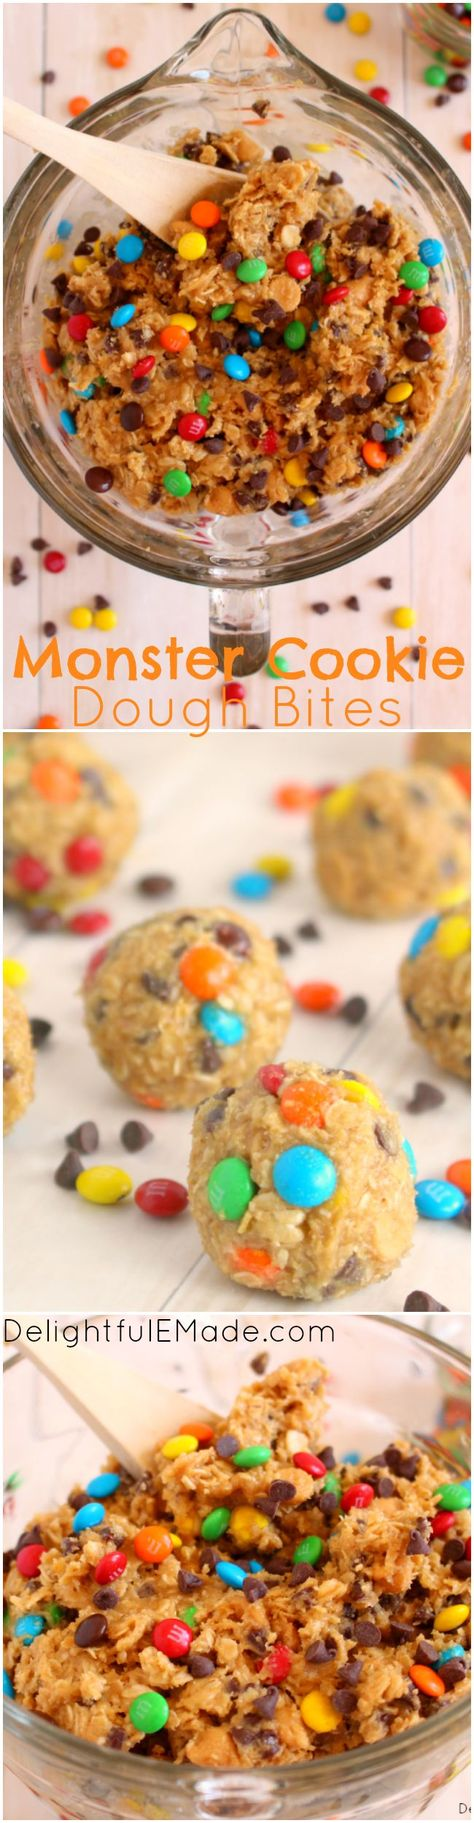 Monster Cookie Dough Bites | Loaded with M&M's, chocolate and peanut butter chips, this cookie dough is egg-free and made to be eaten right out of the bowl, or rolled into balls for the perfect cookie dough treat. No sneaking necessary!